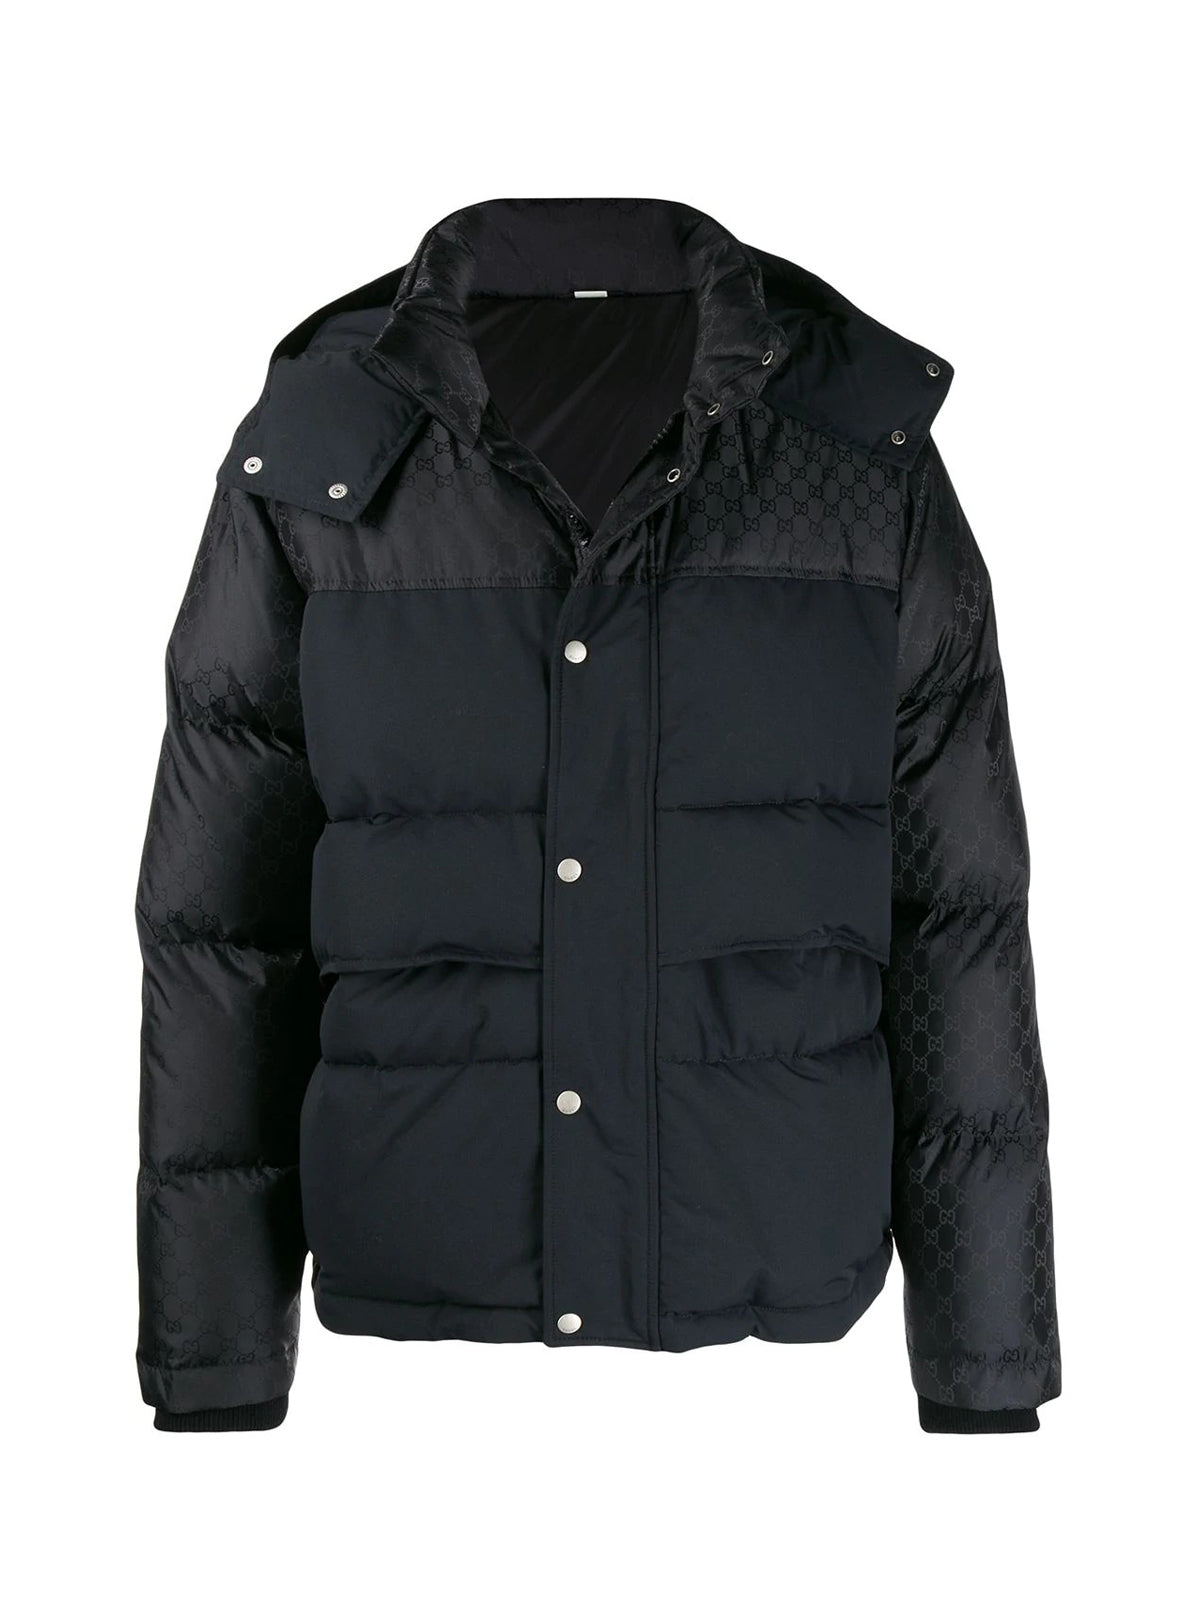 Padded GG jacket